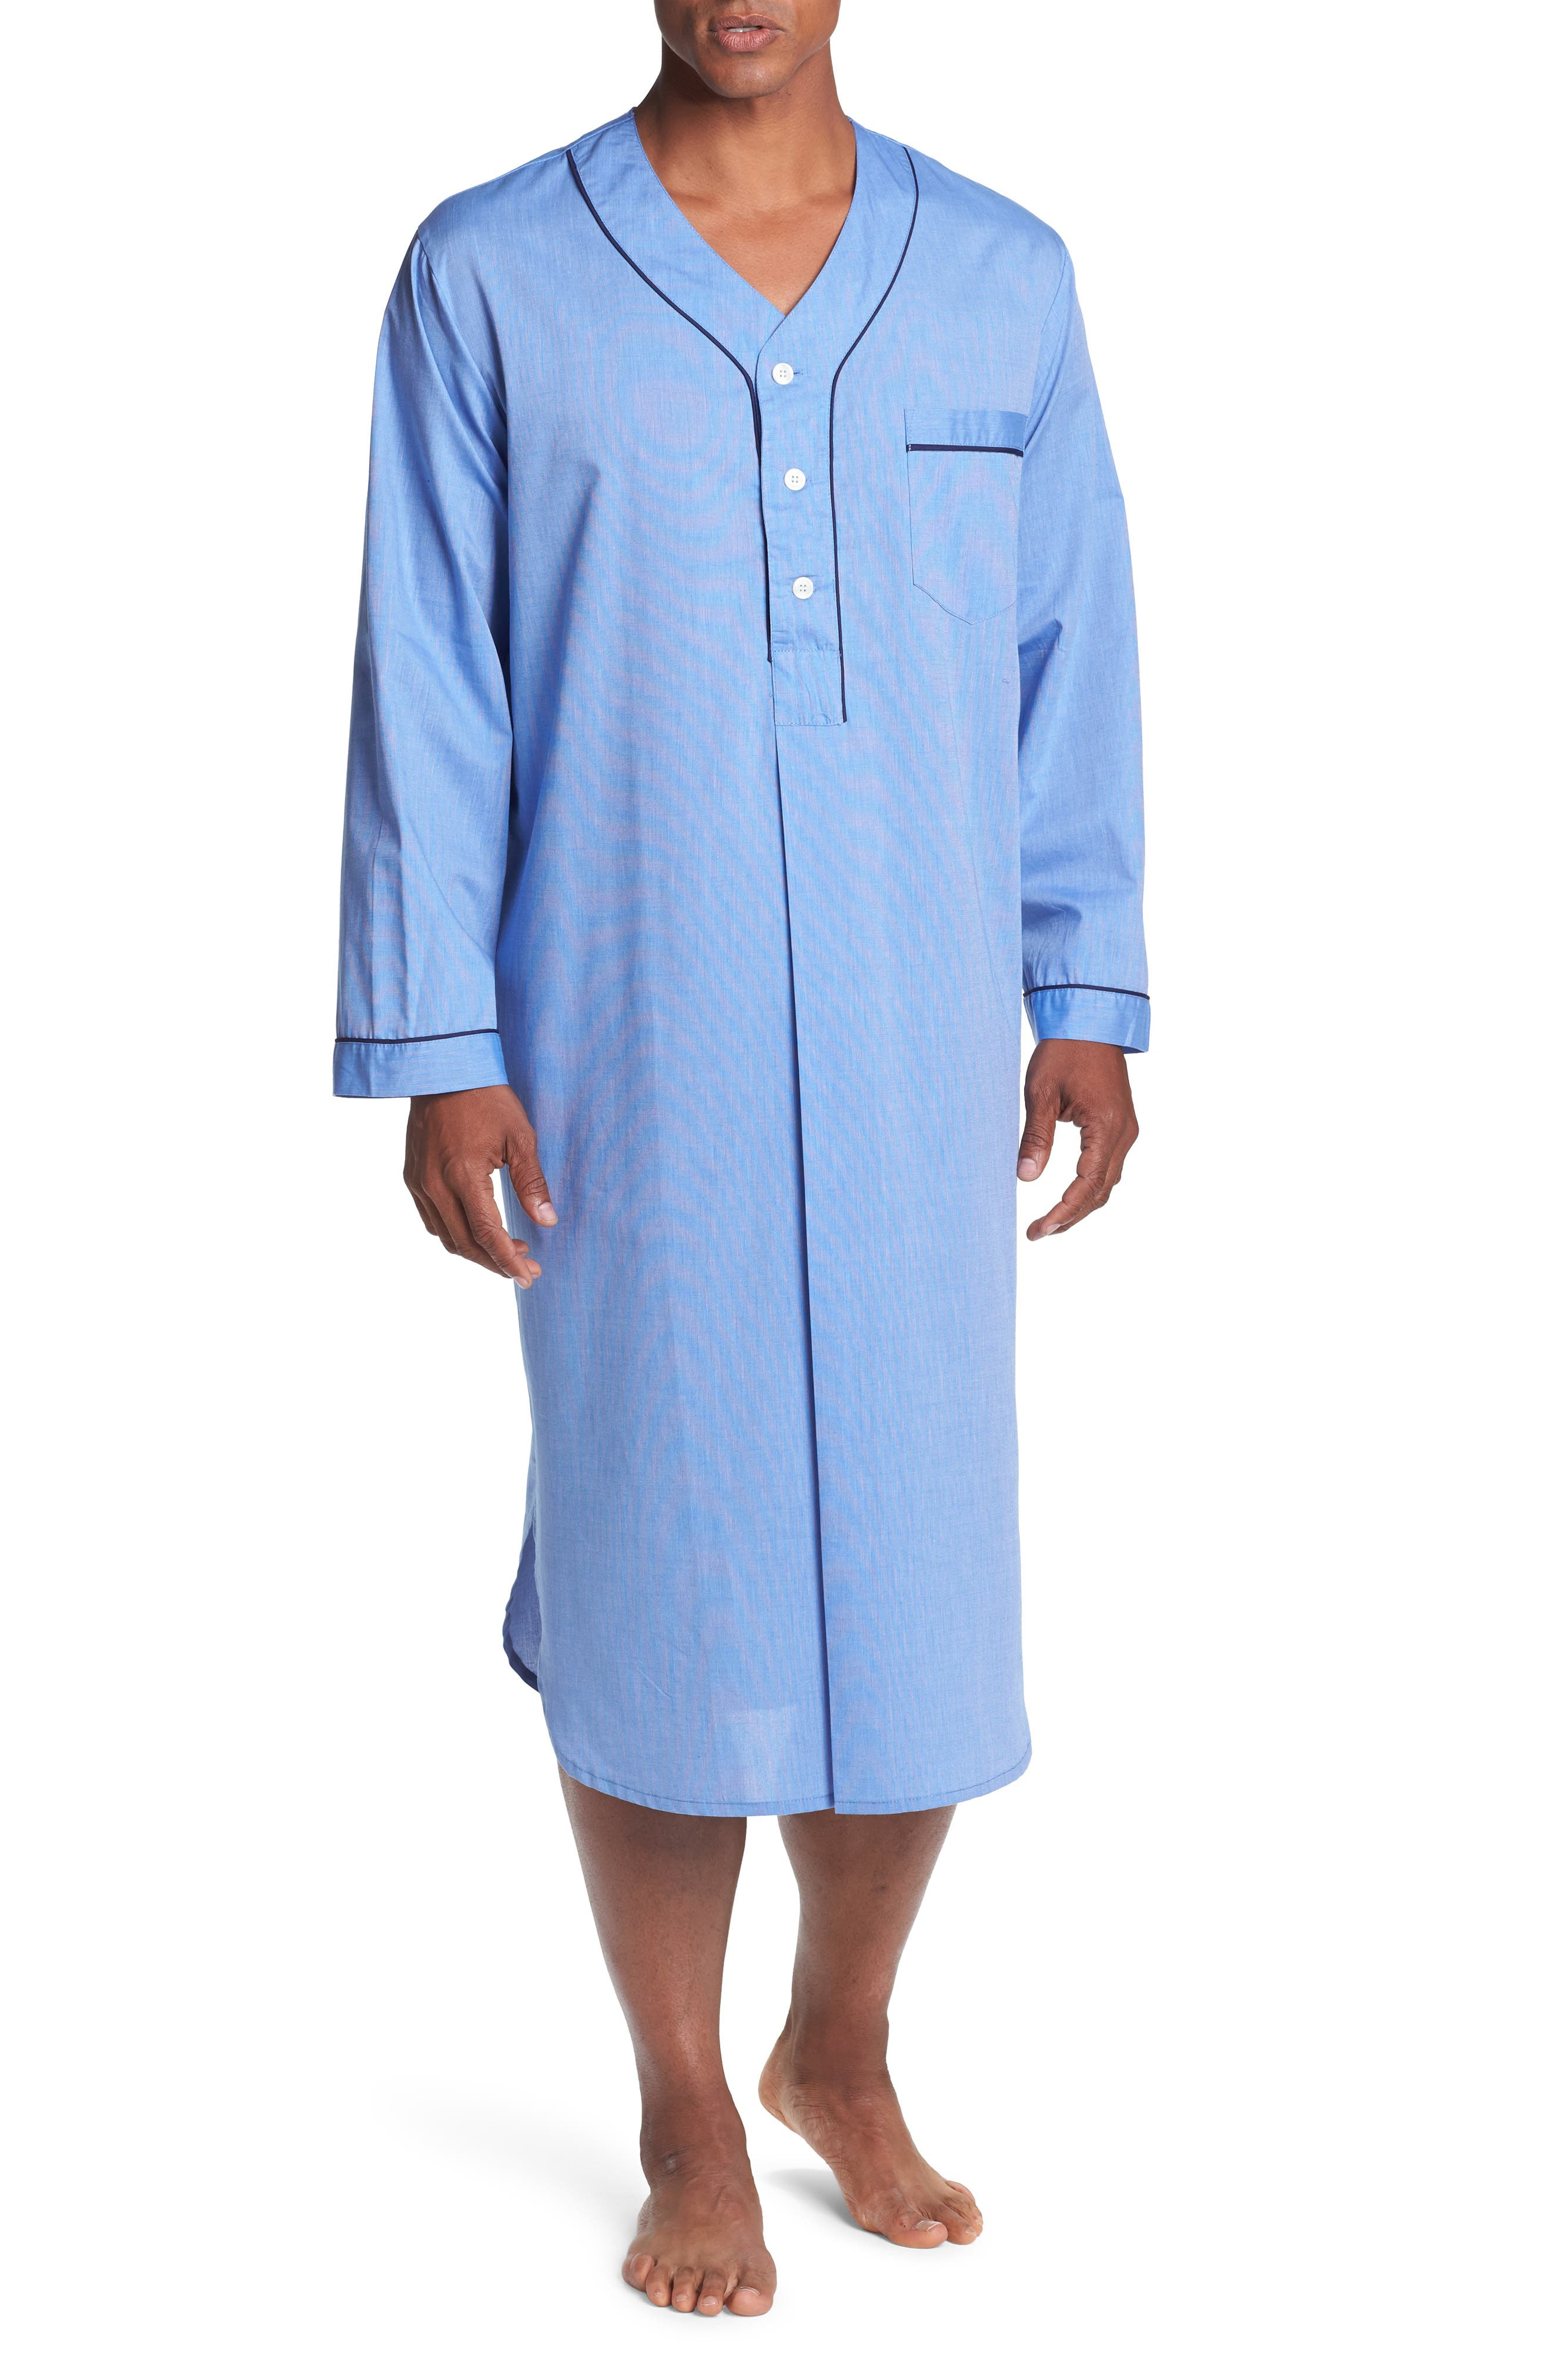 1920s Men's Clothing Mens Majestic International Cotton Nightshirt $60.00 AT vintagedancer.com